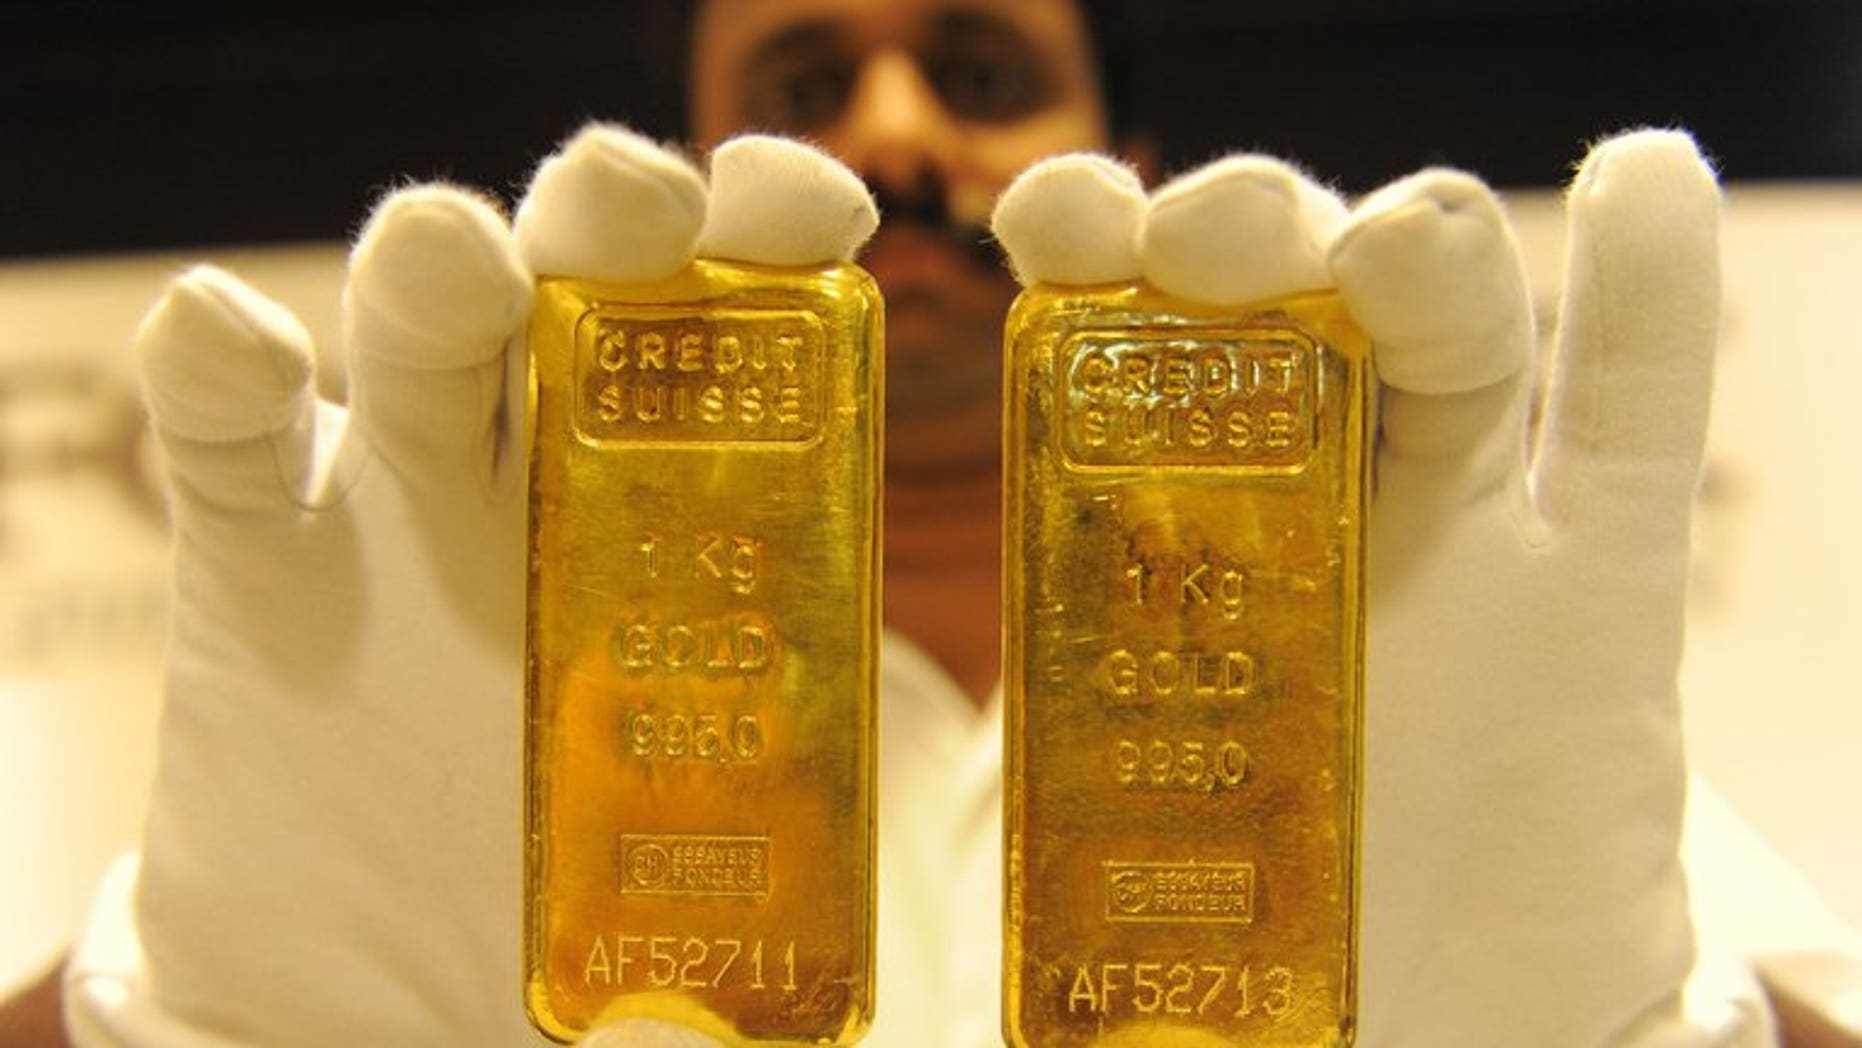 A jewellery shop employee displays 24-carat gold bars in Ahmedabad on August 20, 2011. Global demand for gold fell to a four-year-low in the second quarter despite a surge in demand from India and China as the metal became cheaper, the World Gold Council said Thursday.